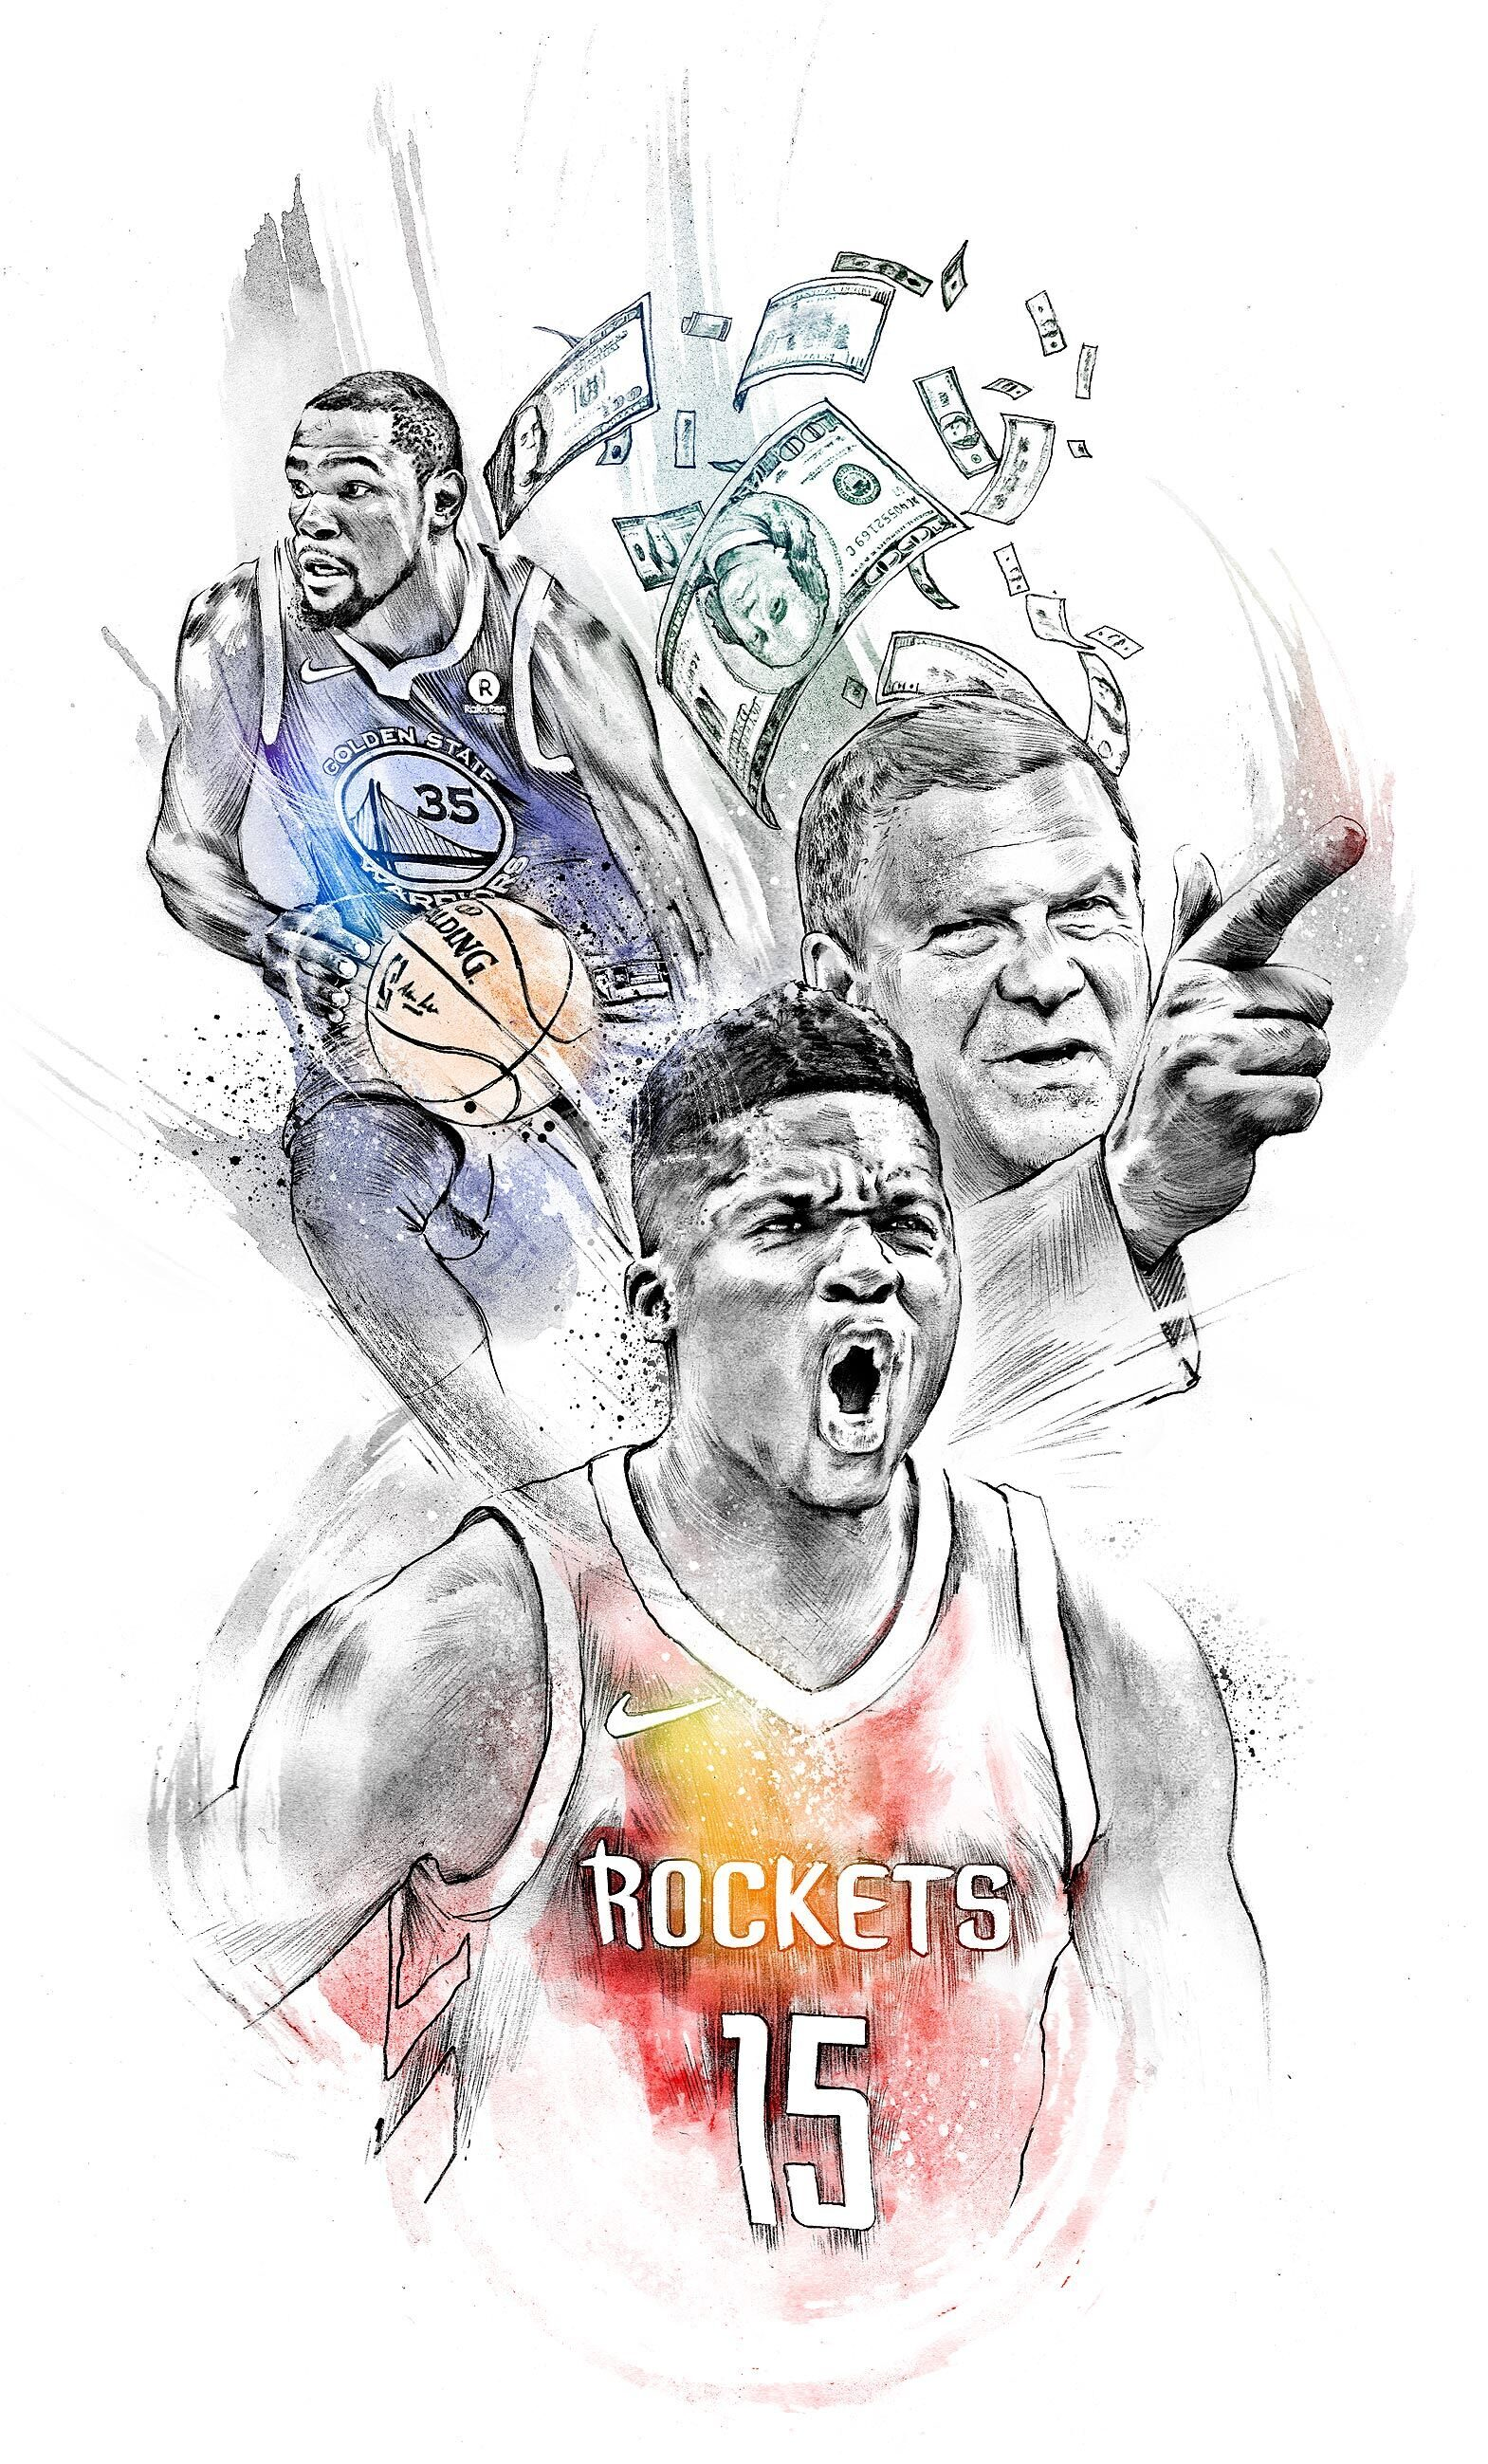 Sport illustration clint capela - Kornel Illustration | Kornel Stadler portfolio